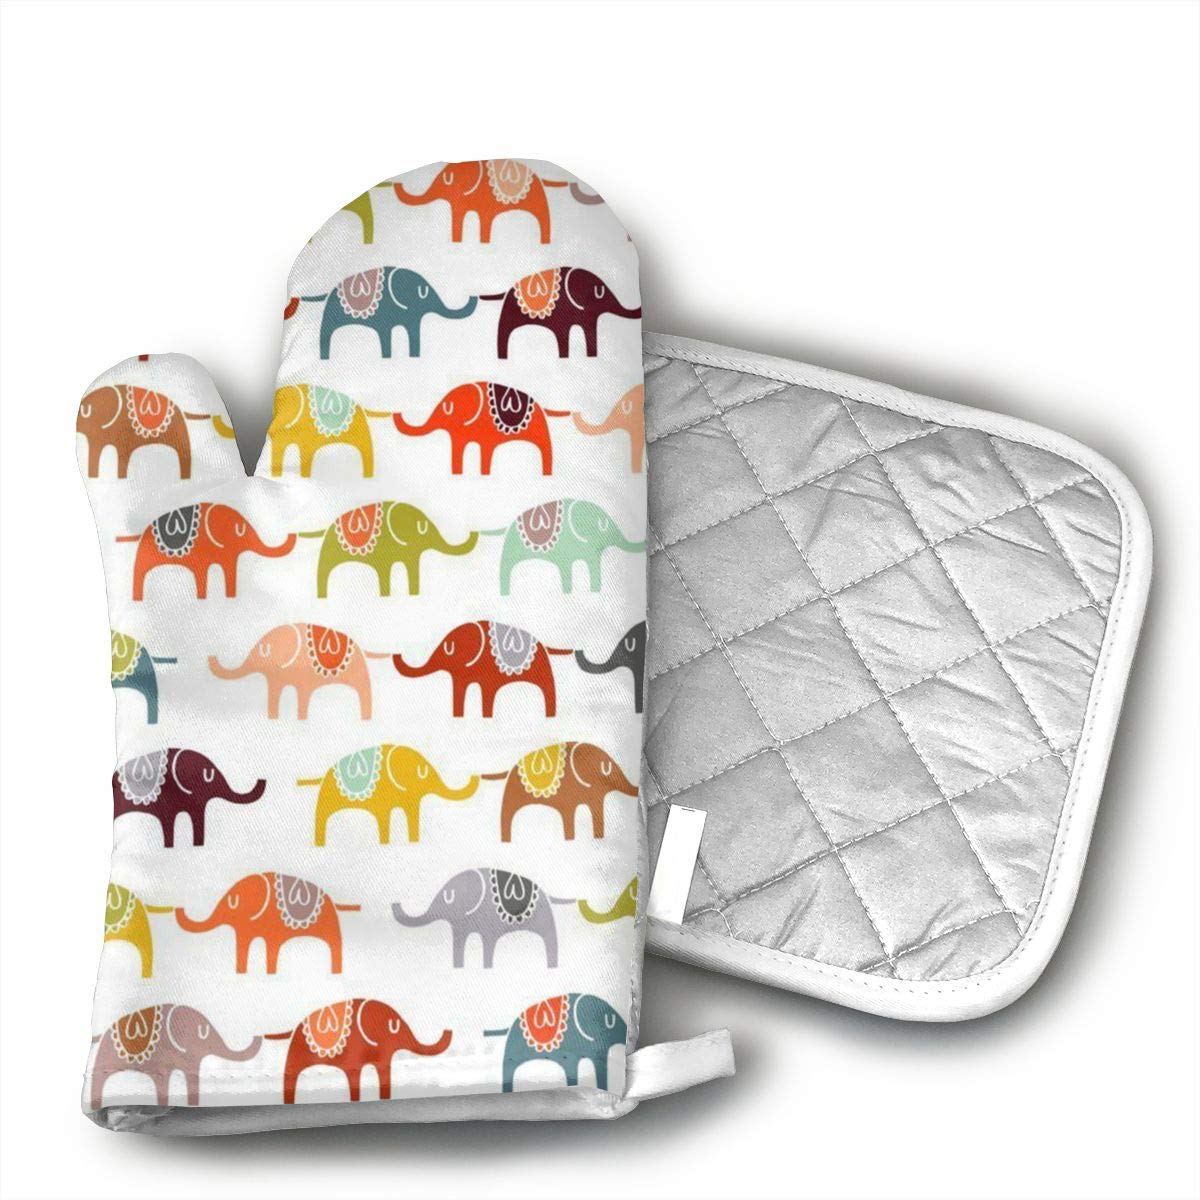 Jiqnajn6 Circus Elephant Oven Mitts,Heat Resistant Oven Gloves, Safe Cooking Baking, Grilling, Barbecue, Machine Washable,Pot Holders.